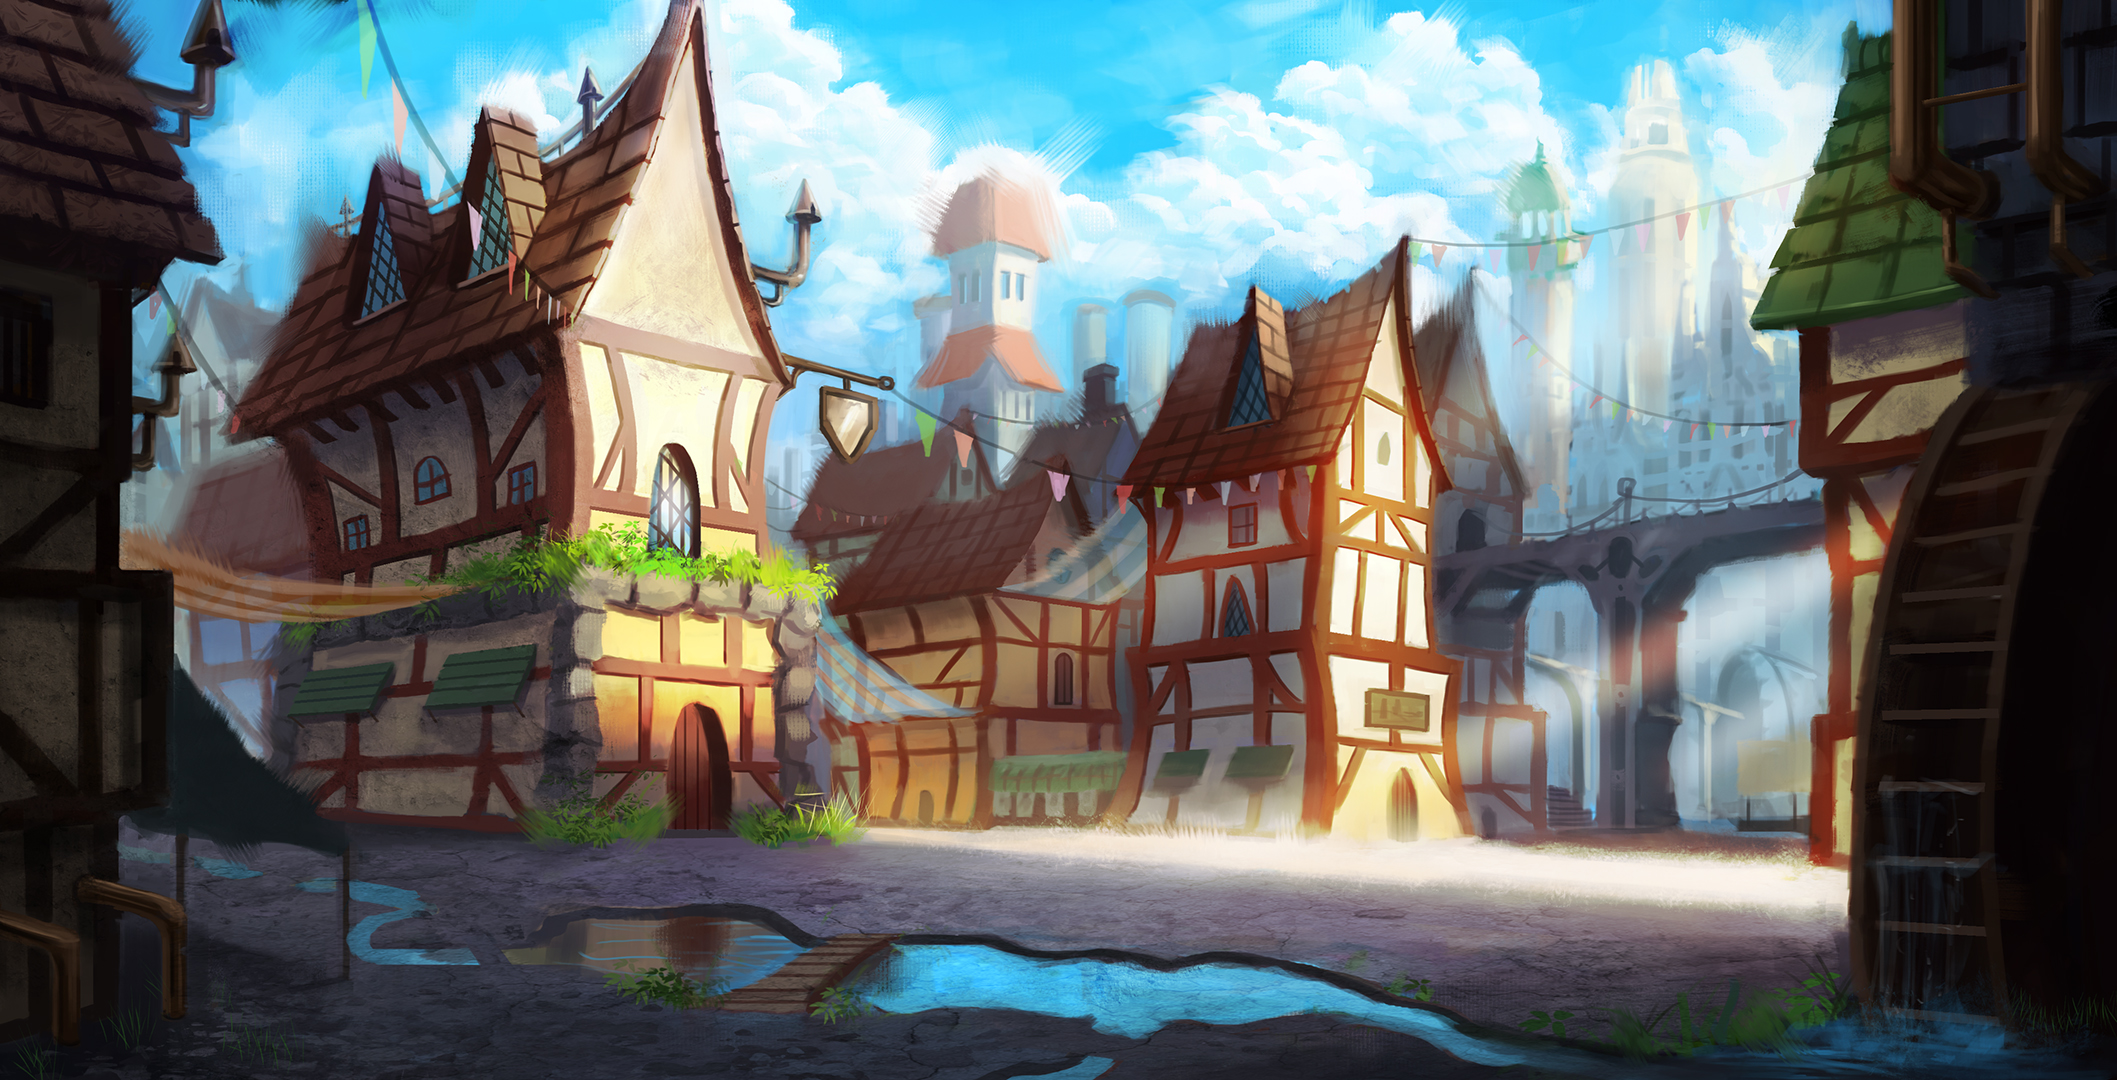 Village by tommyscottart